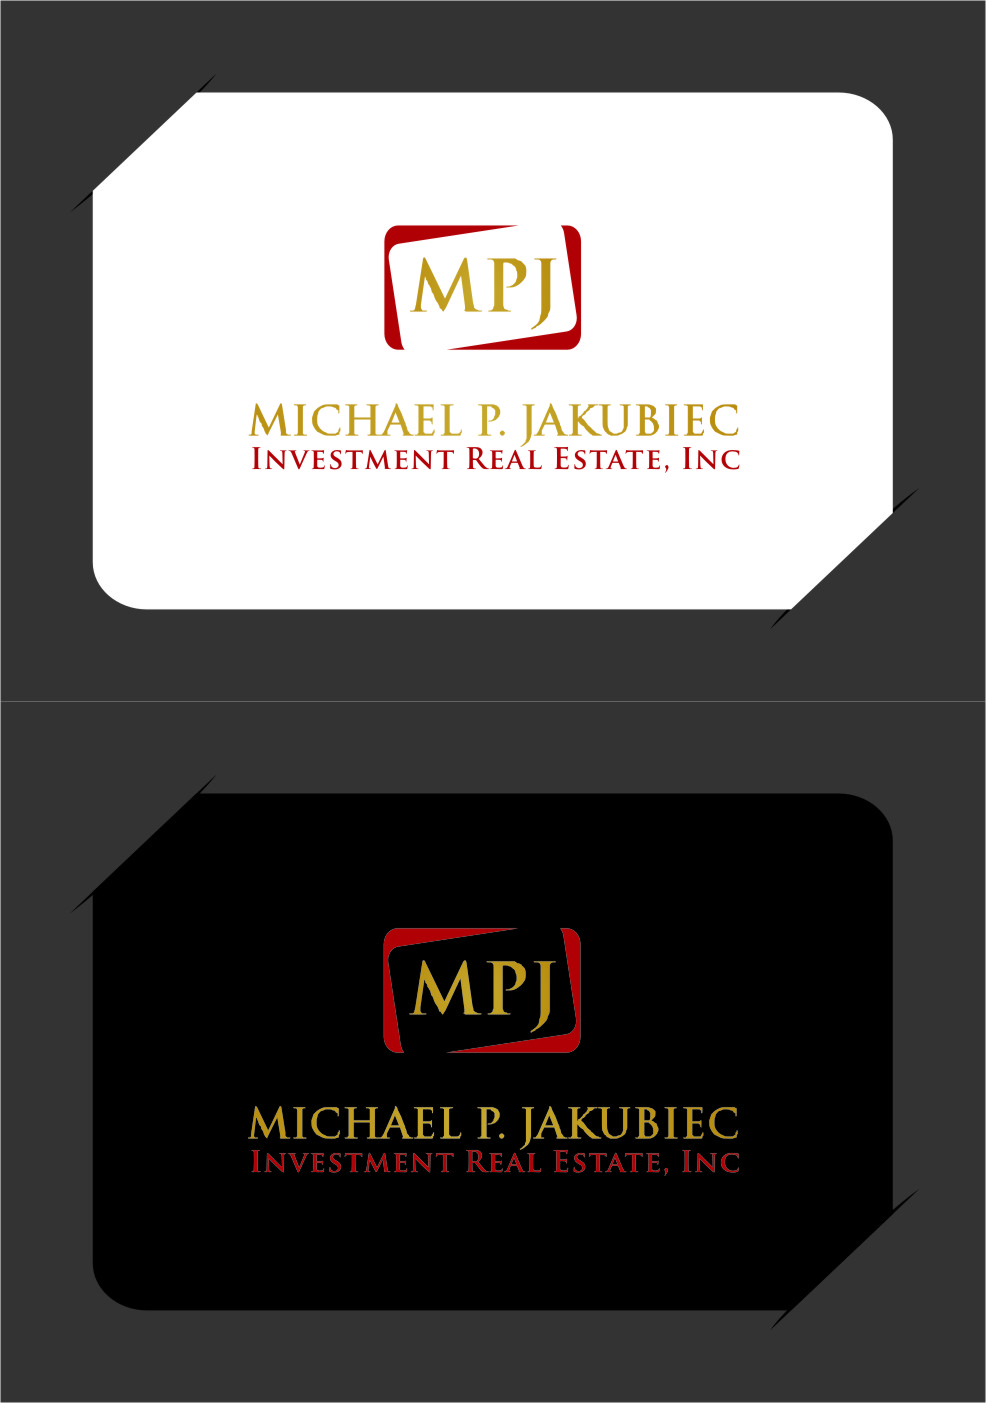 Logo Design by Ngepet_art - Entry No. 127 in the Logo Design Contest New Logo Design for Michael P. Jakubiec Investment Real Estate, Inc..